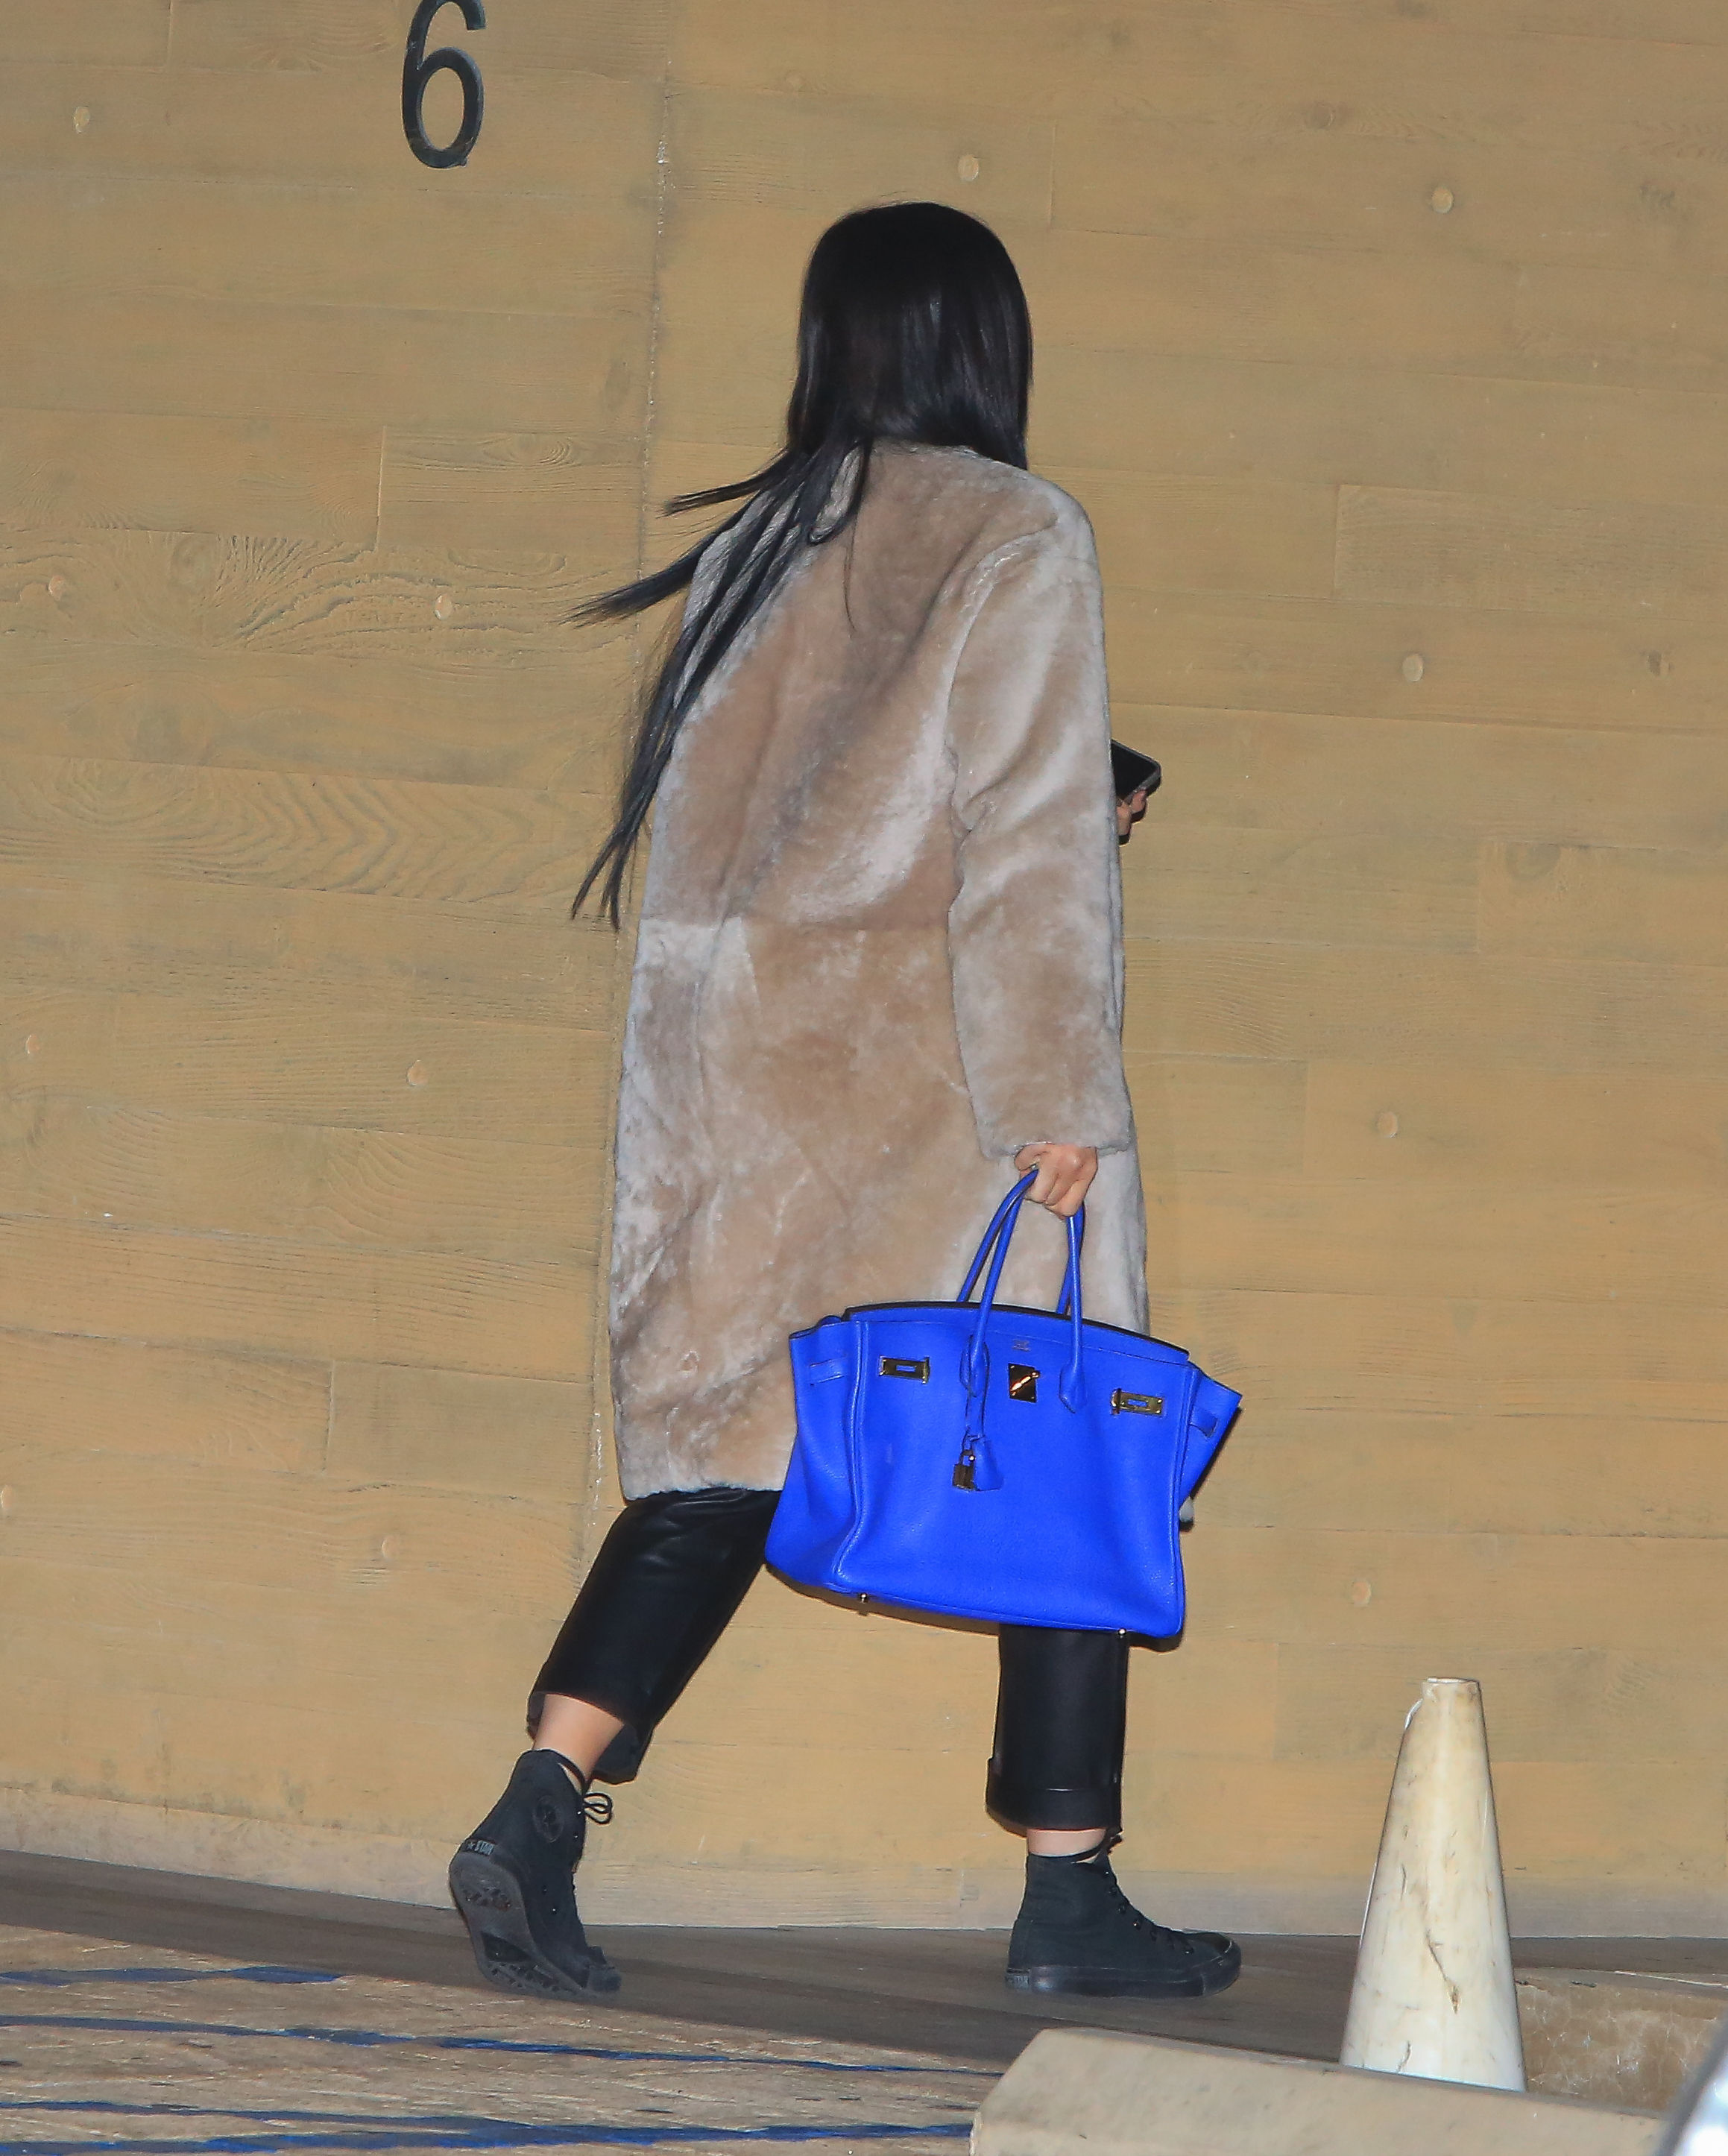 Kylie Jenner arriving at Nobu Restaurant